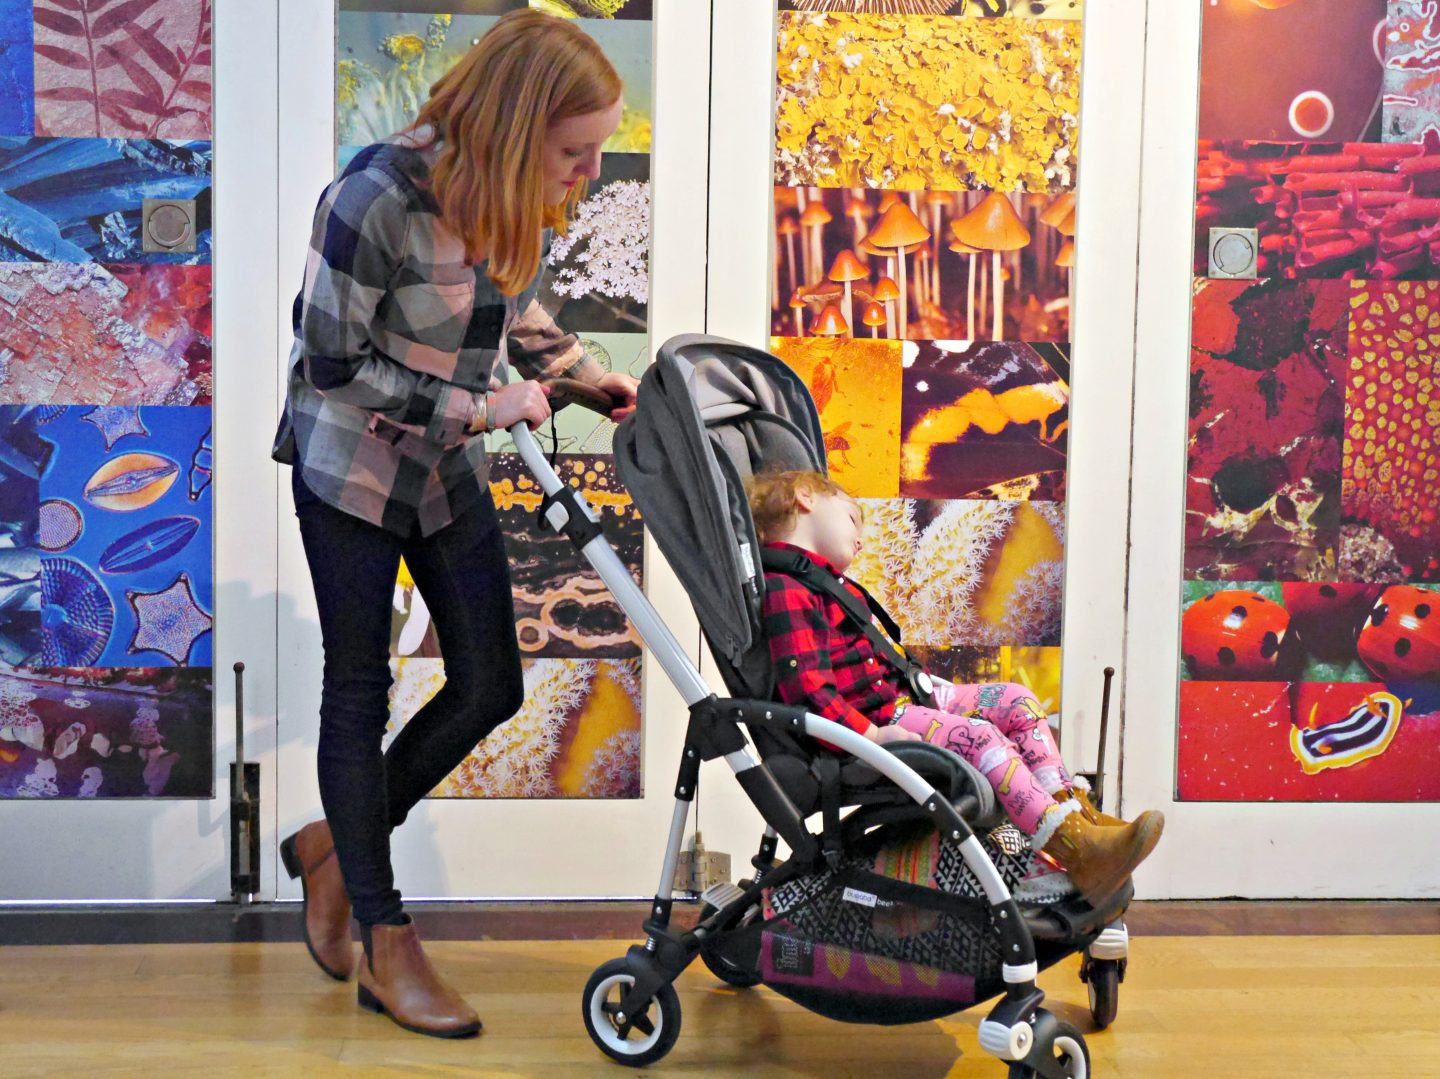 Bugaboo Bee 5 review – five reasons it's the perfect city pram